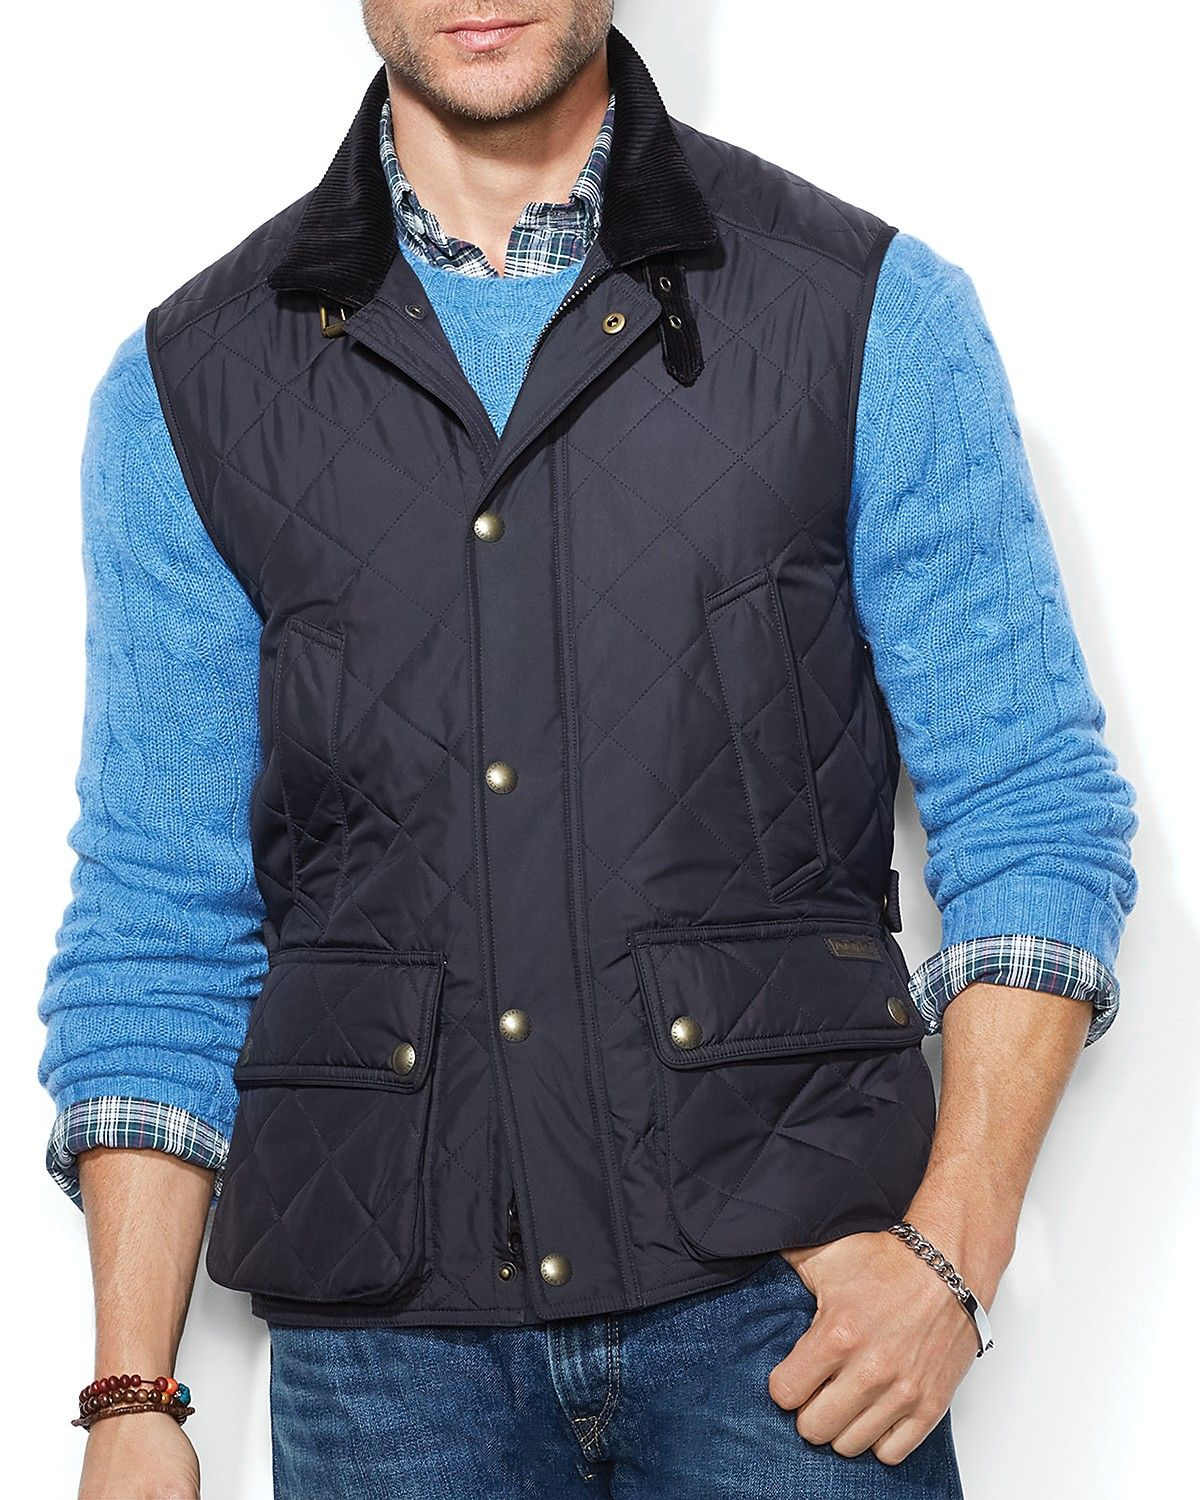 Polo Ralph Lauren Quilted Vest | Bloomingdale's | My Style ... : polo quilted vest - Adamdwight.com